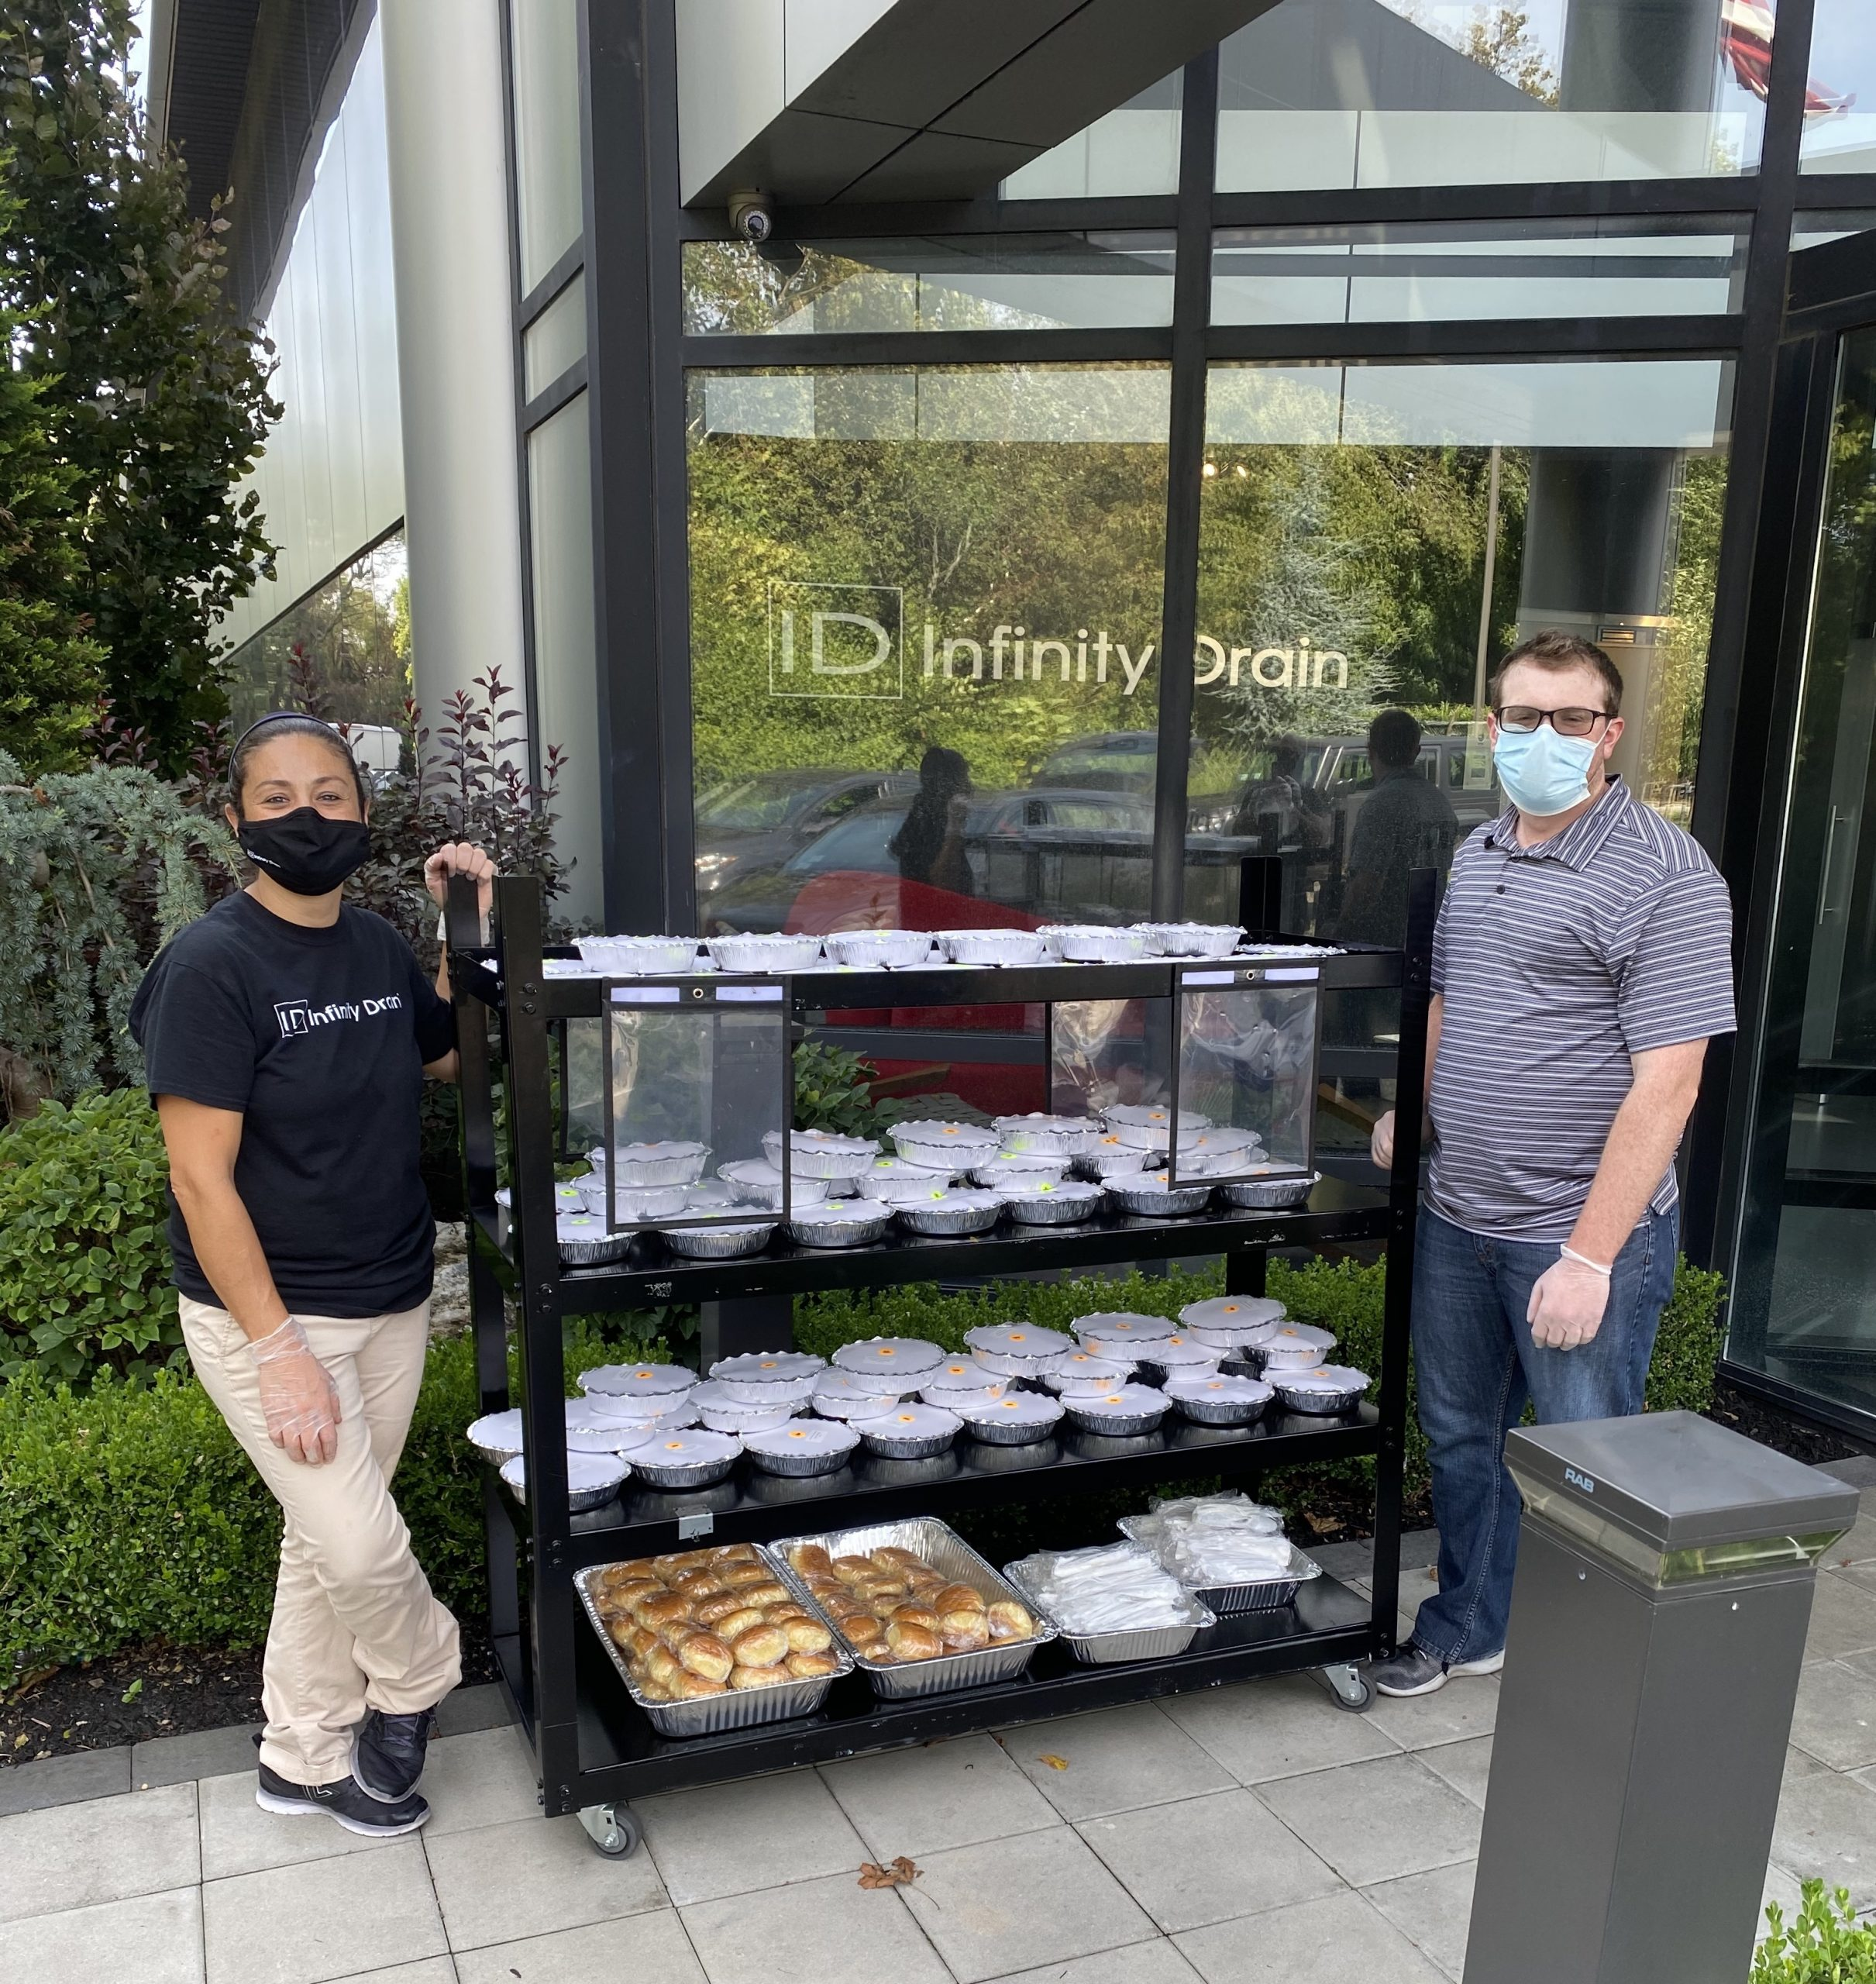 Infinity Drain Donating Meals